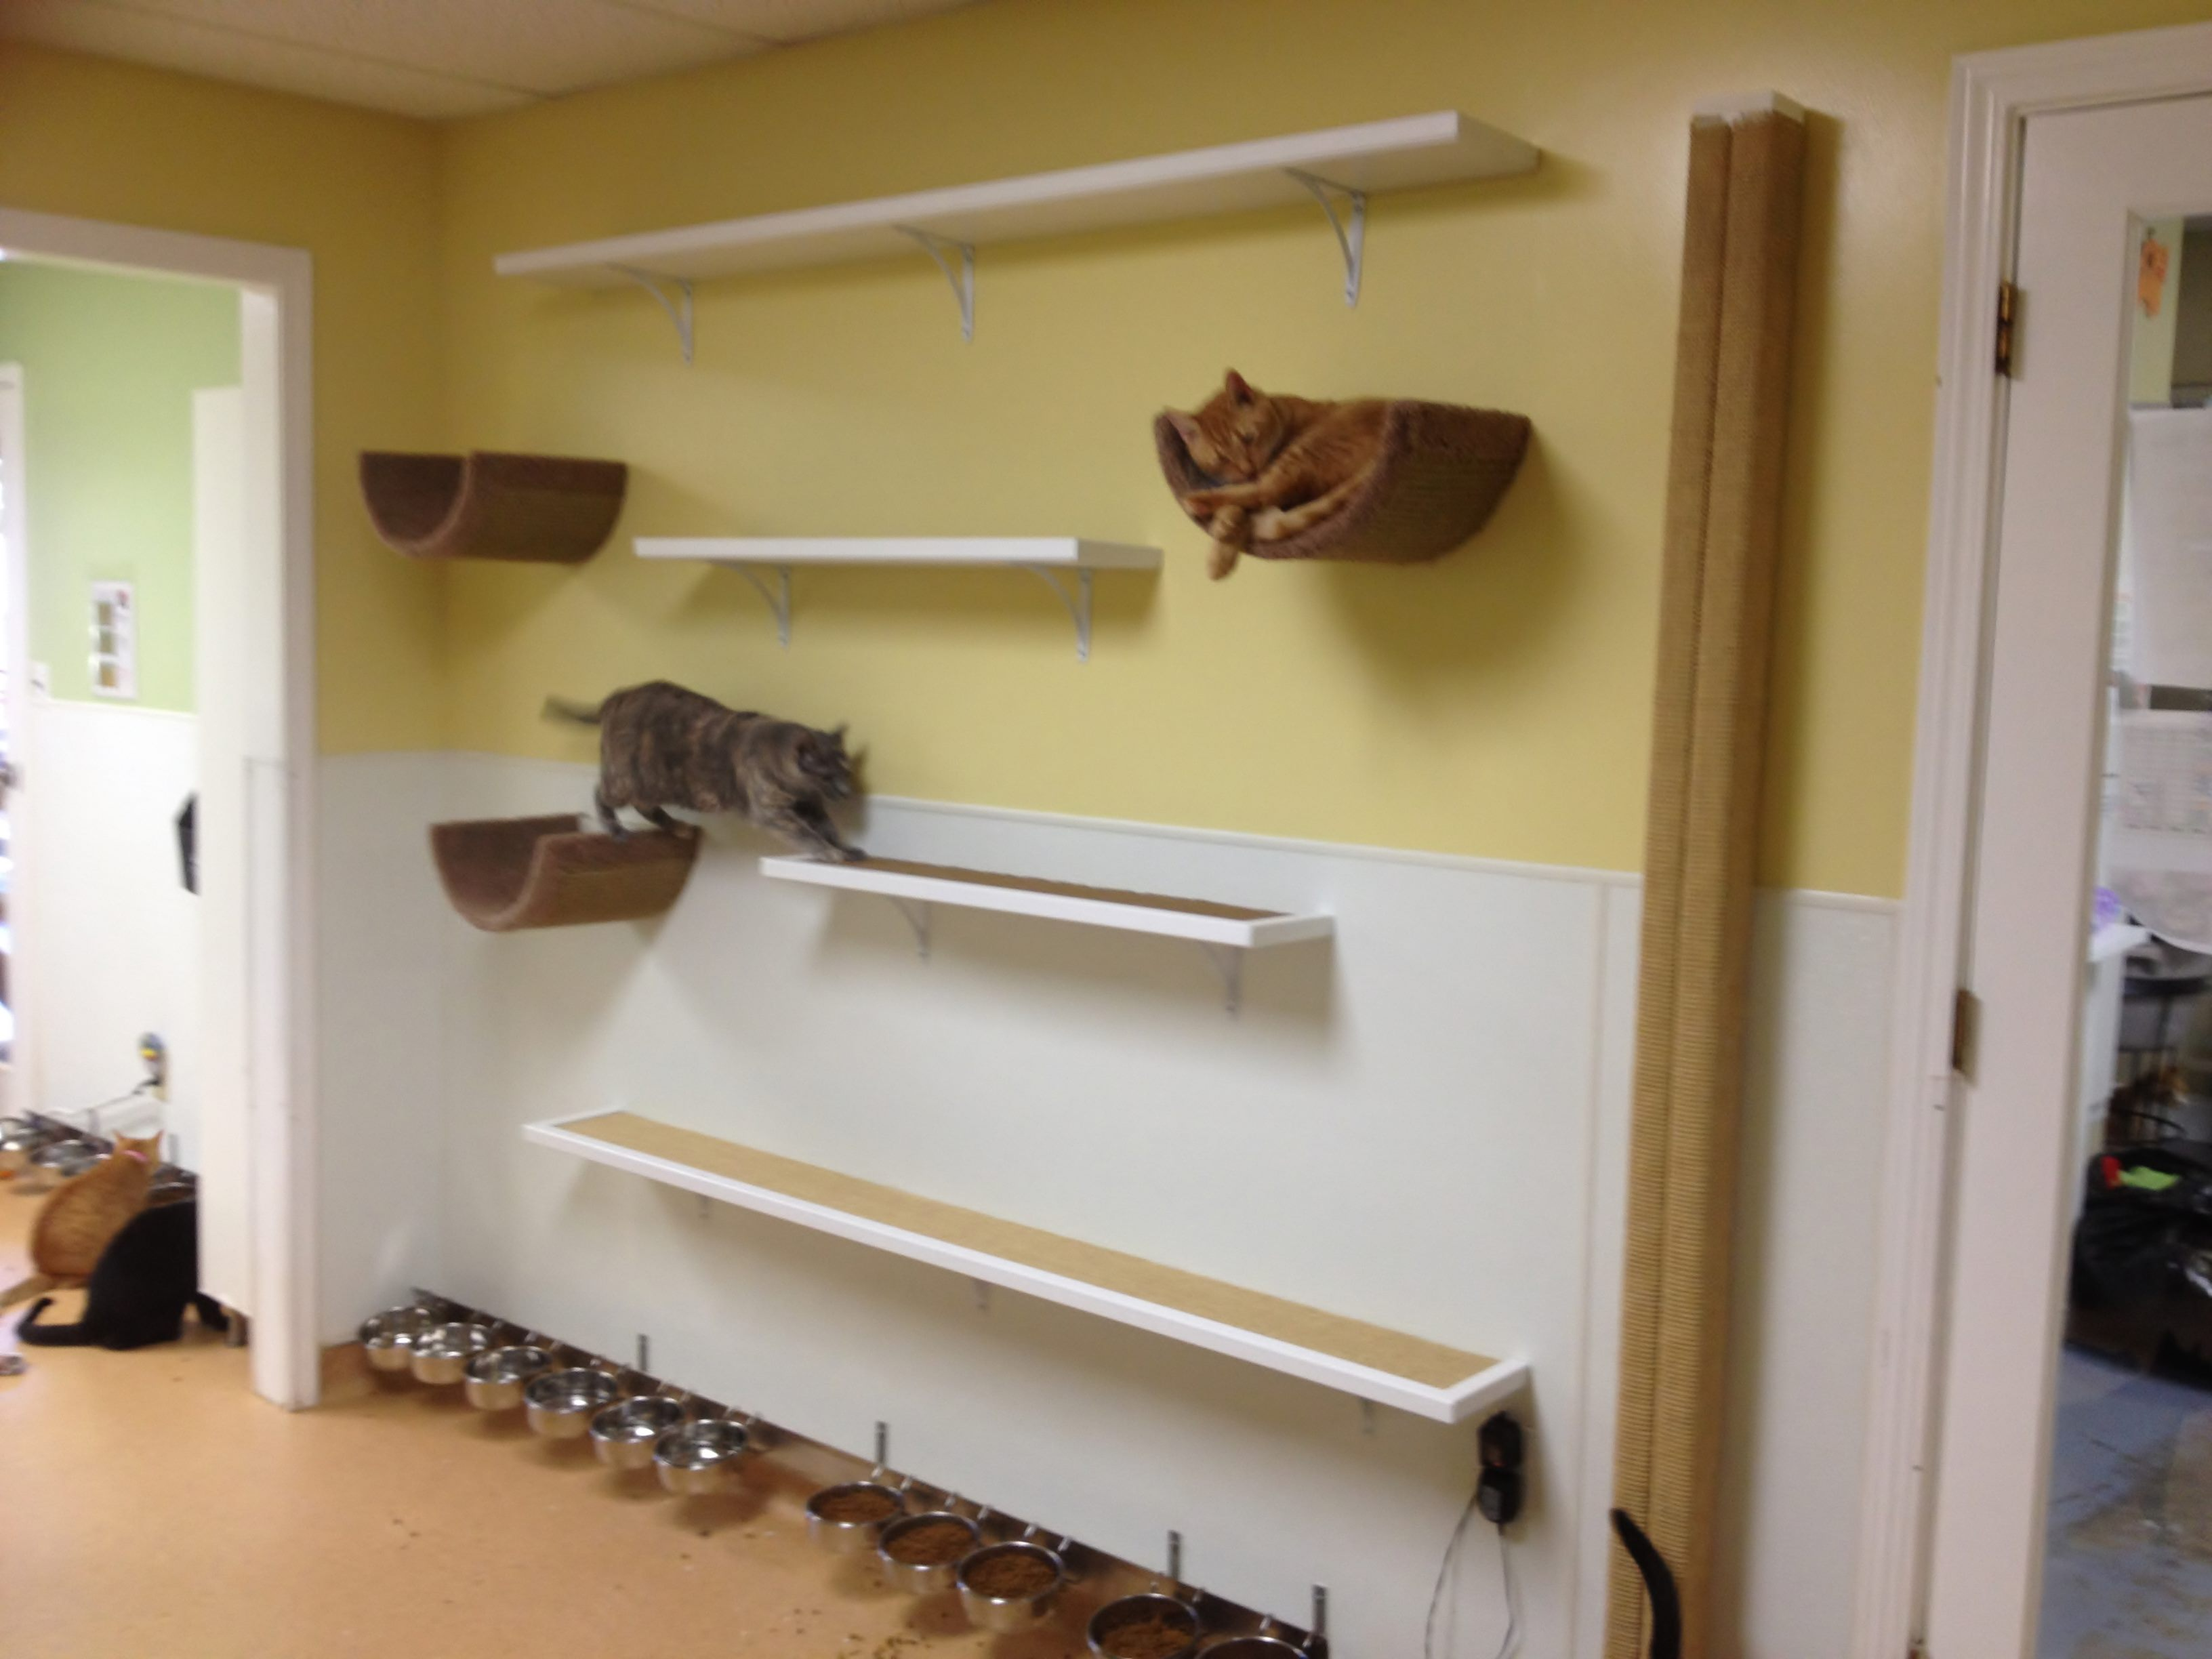 Installed in the Furkids shelter.